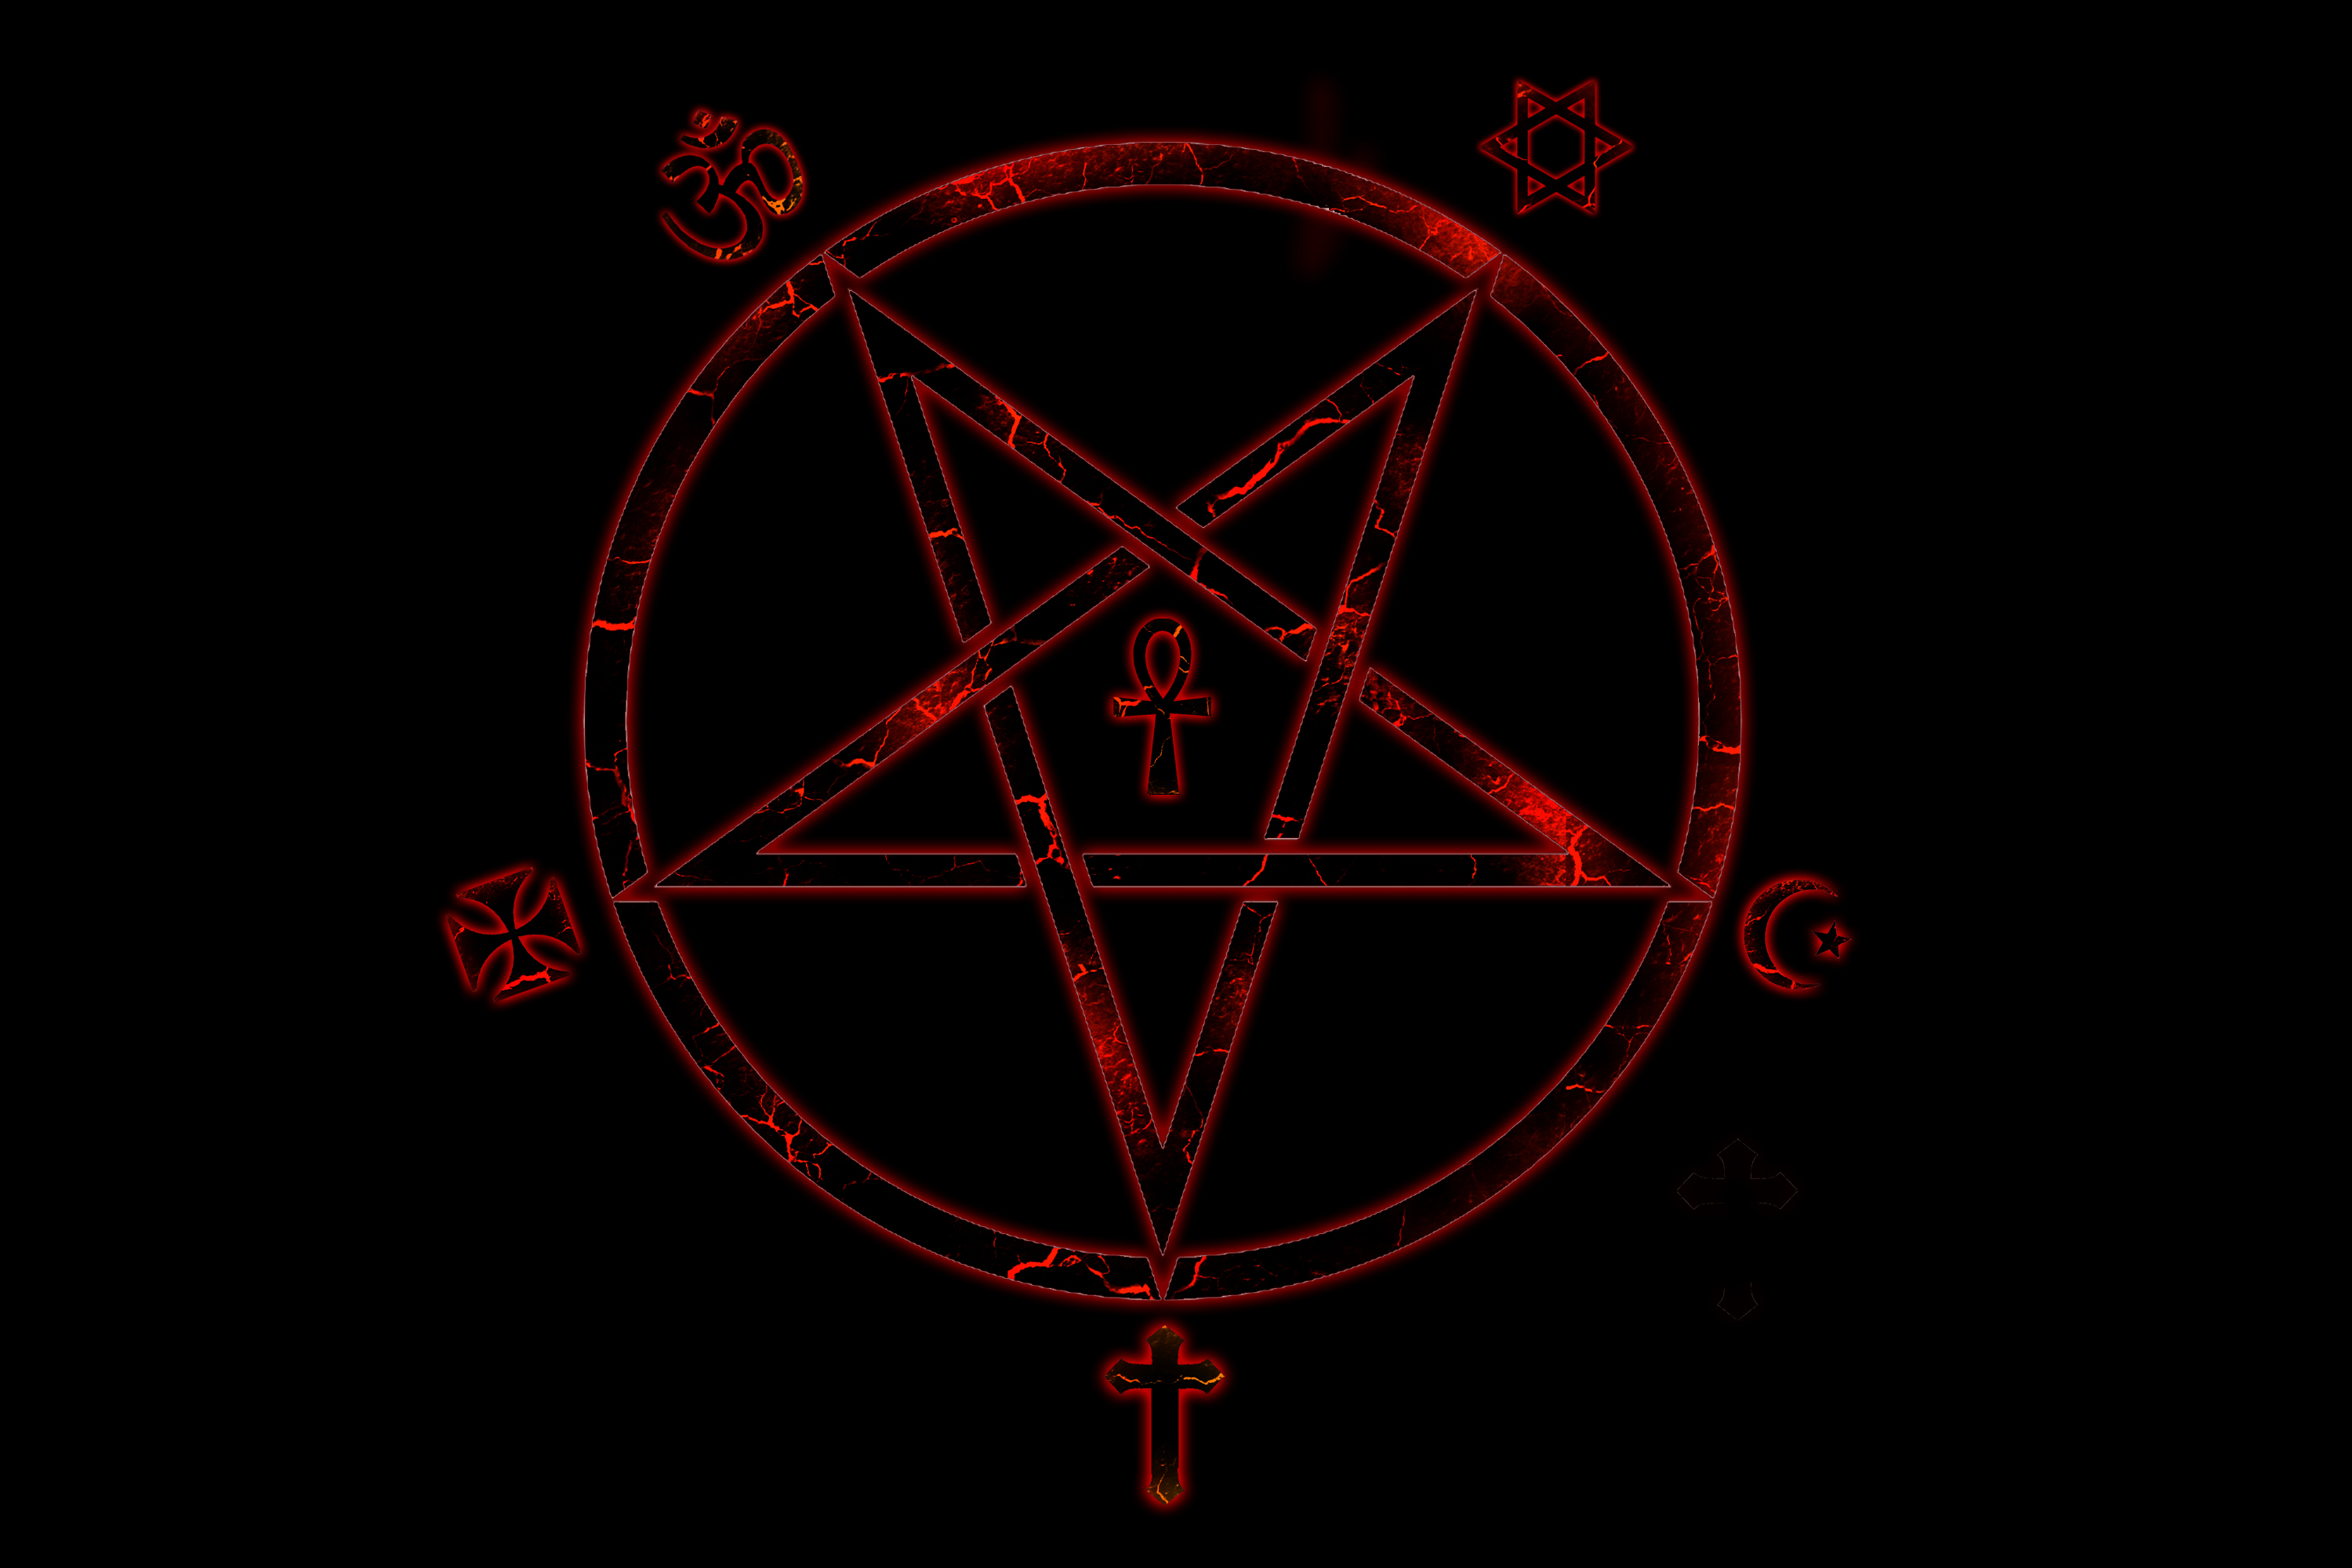 Pentagram Wallpaper   ForWallpapercom 3000x2000